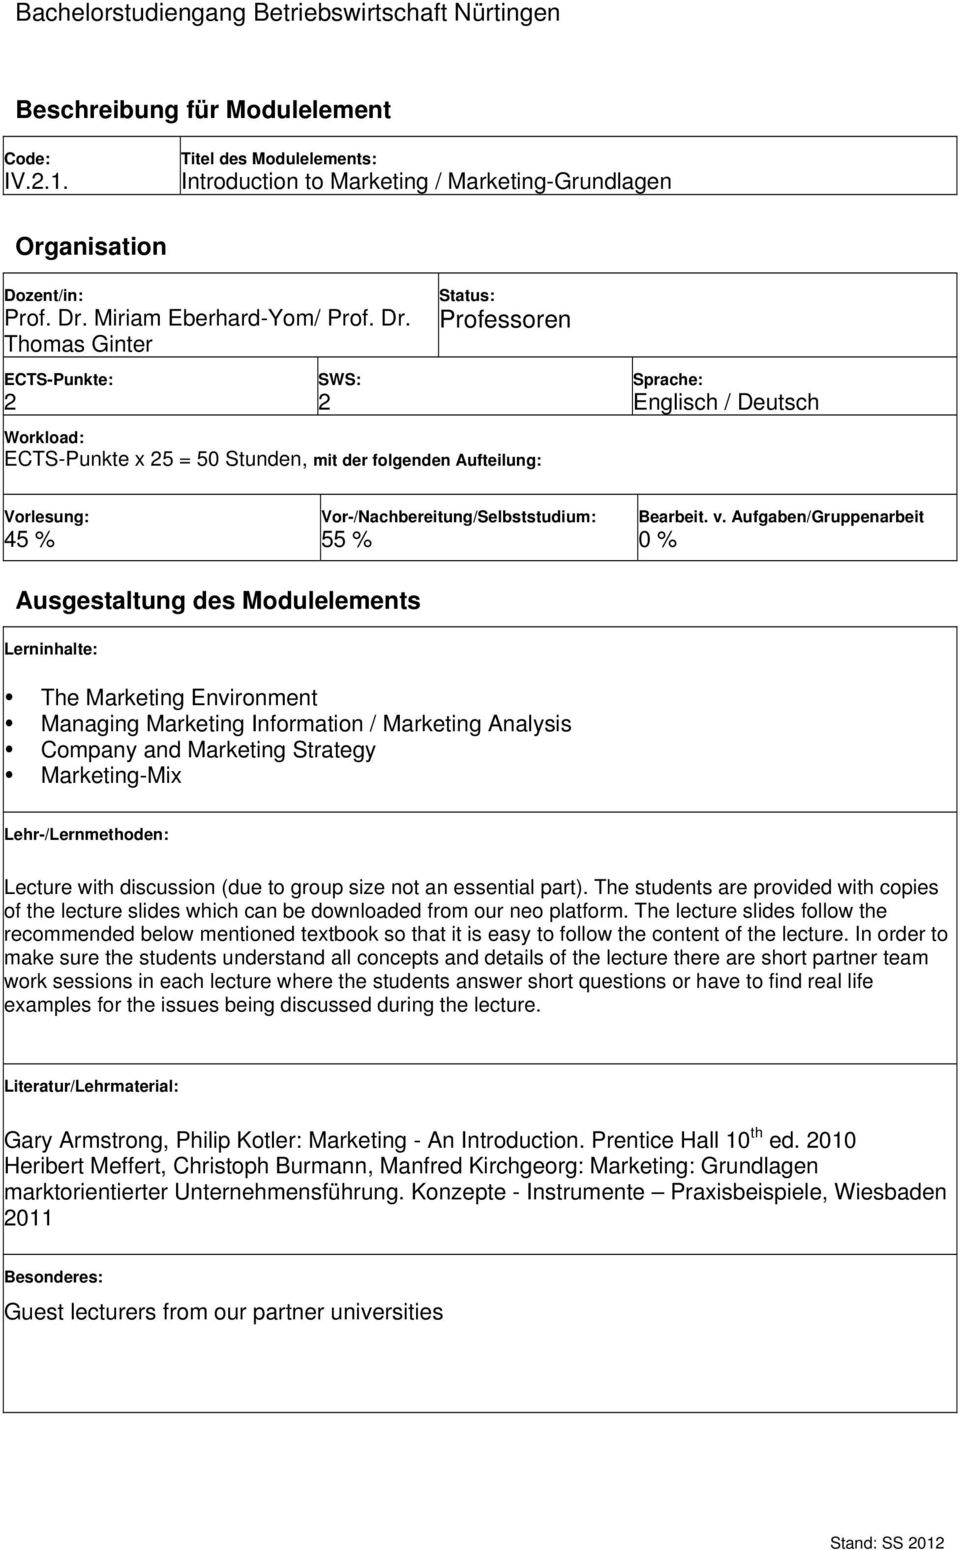 Thomas Ginter 2 2 Professoren ECTS-Punkte x 25 = 50 Stunden, mit der folgenden Aufteilung: Englisch / Deutsch 45 % 55 % 0 % The Marketing Environment Managing Marketing Information / Marketing